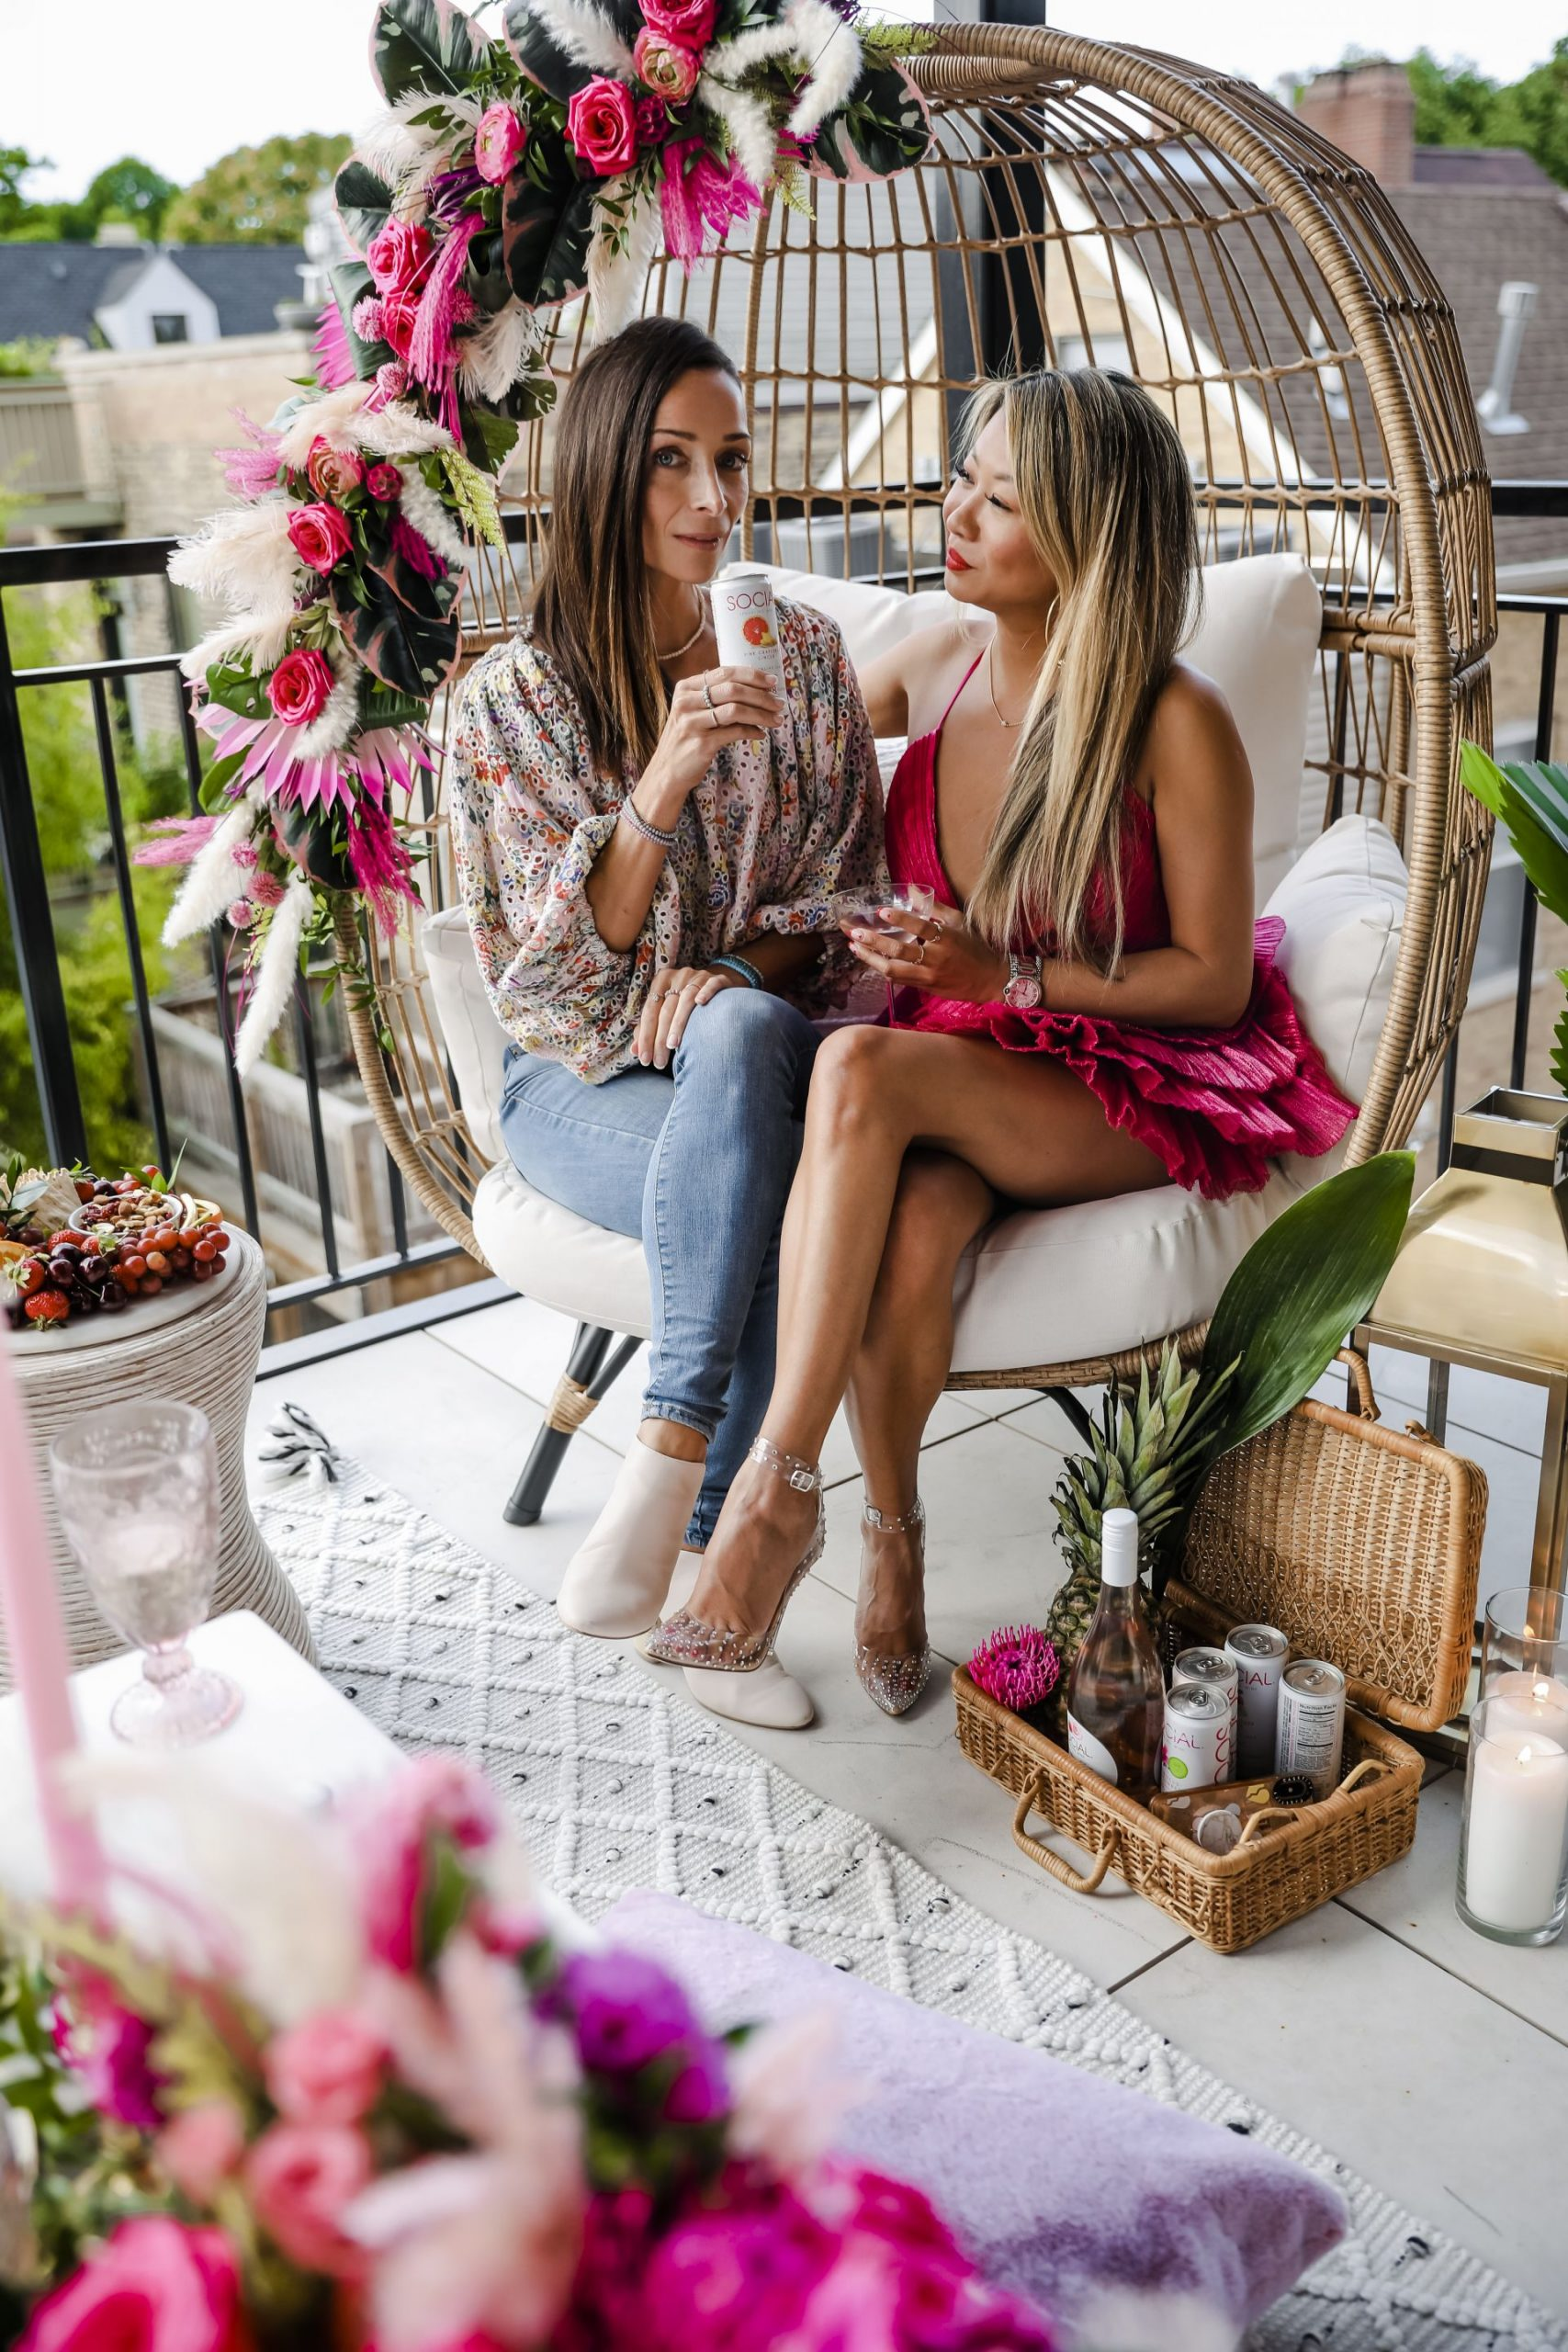 michelle elfvin, chicago mom bloggers, patio party inspiration, glam patio inspiration, target egg chair party, egg chair floral design, chicago fashion bloggers, jennifer worman